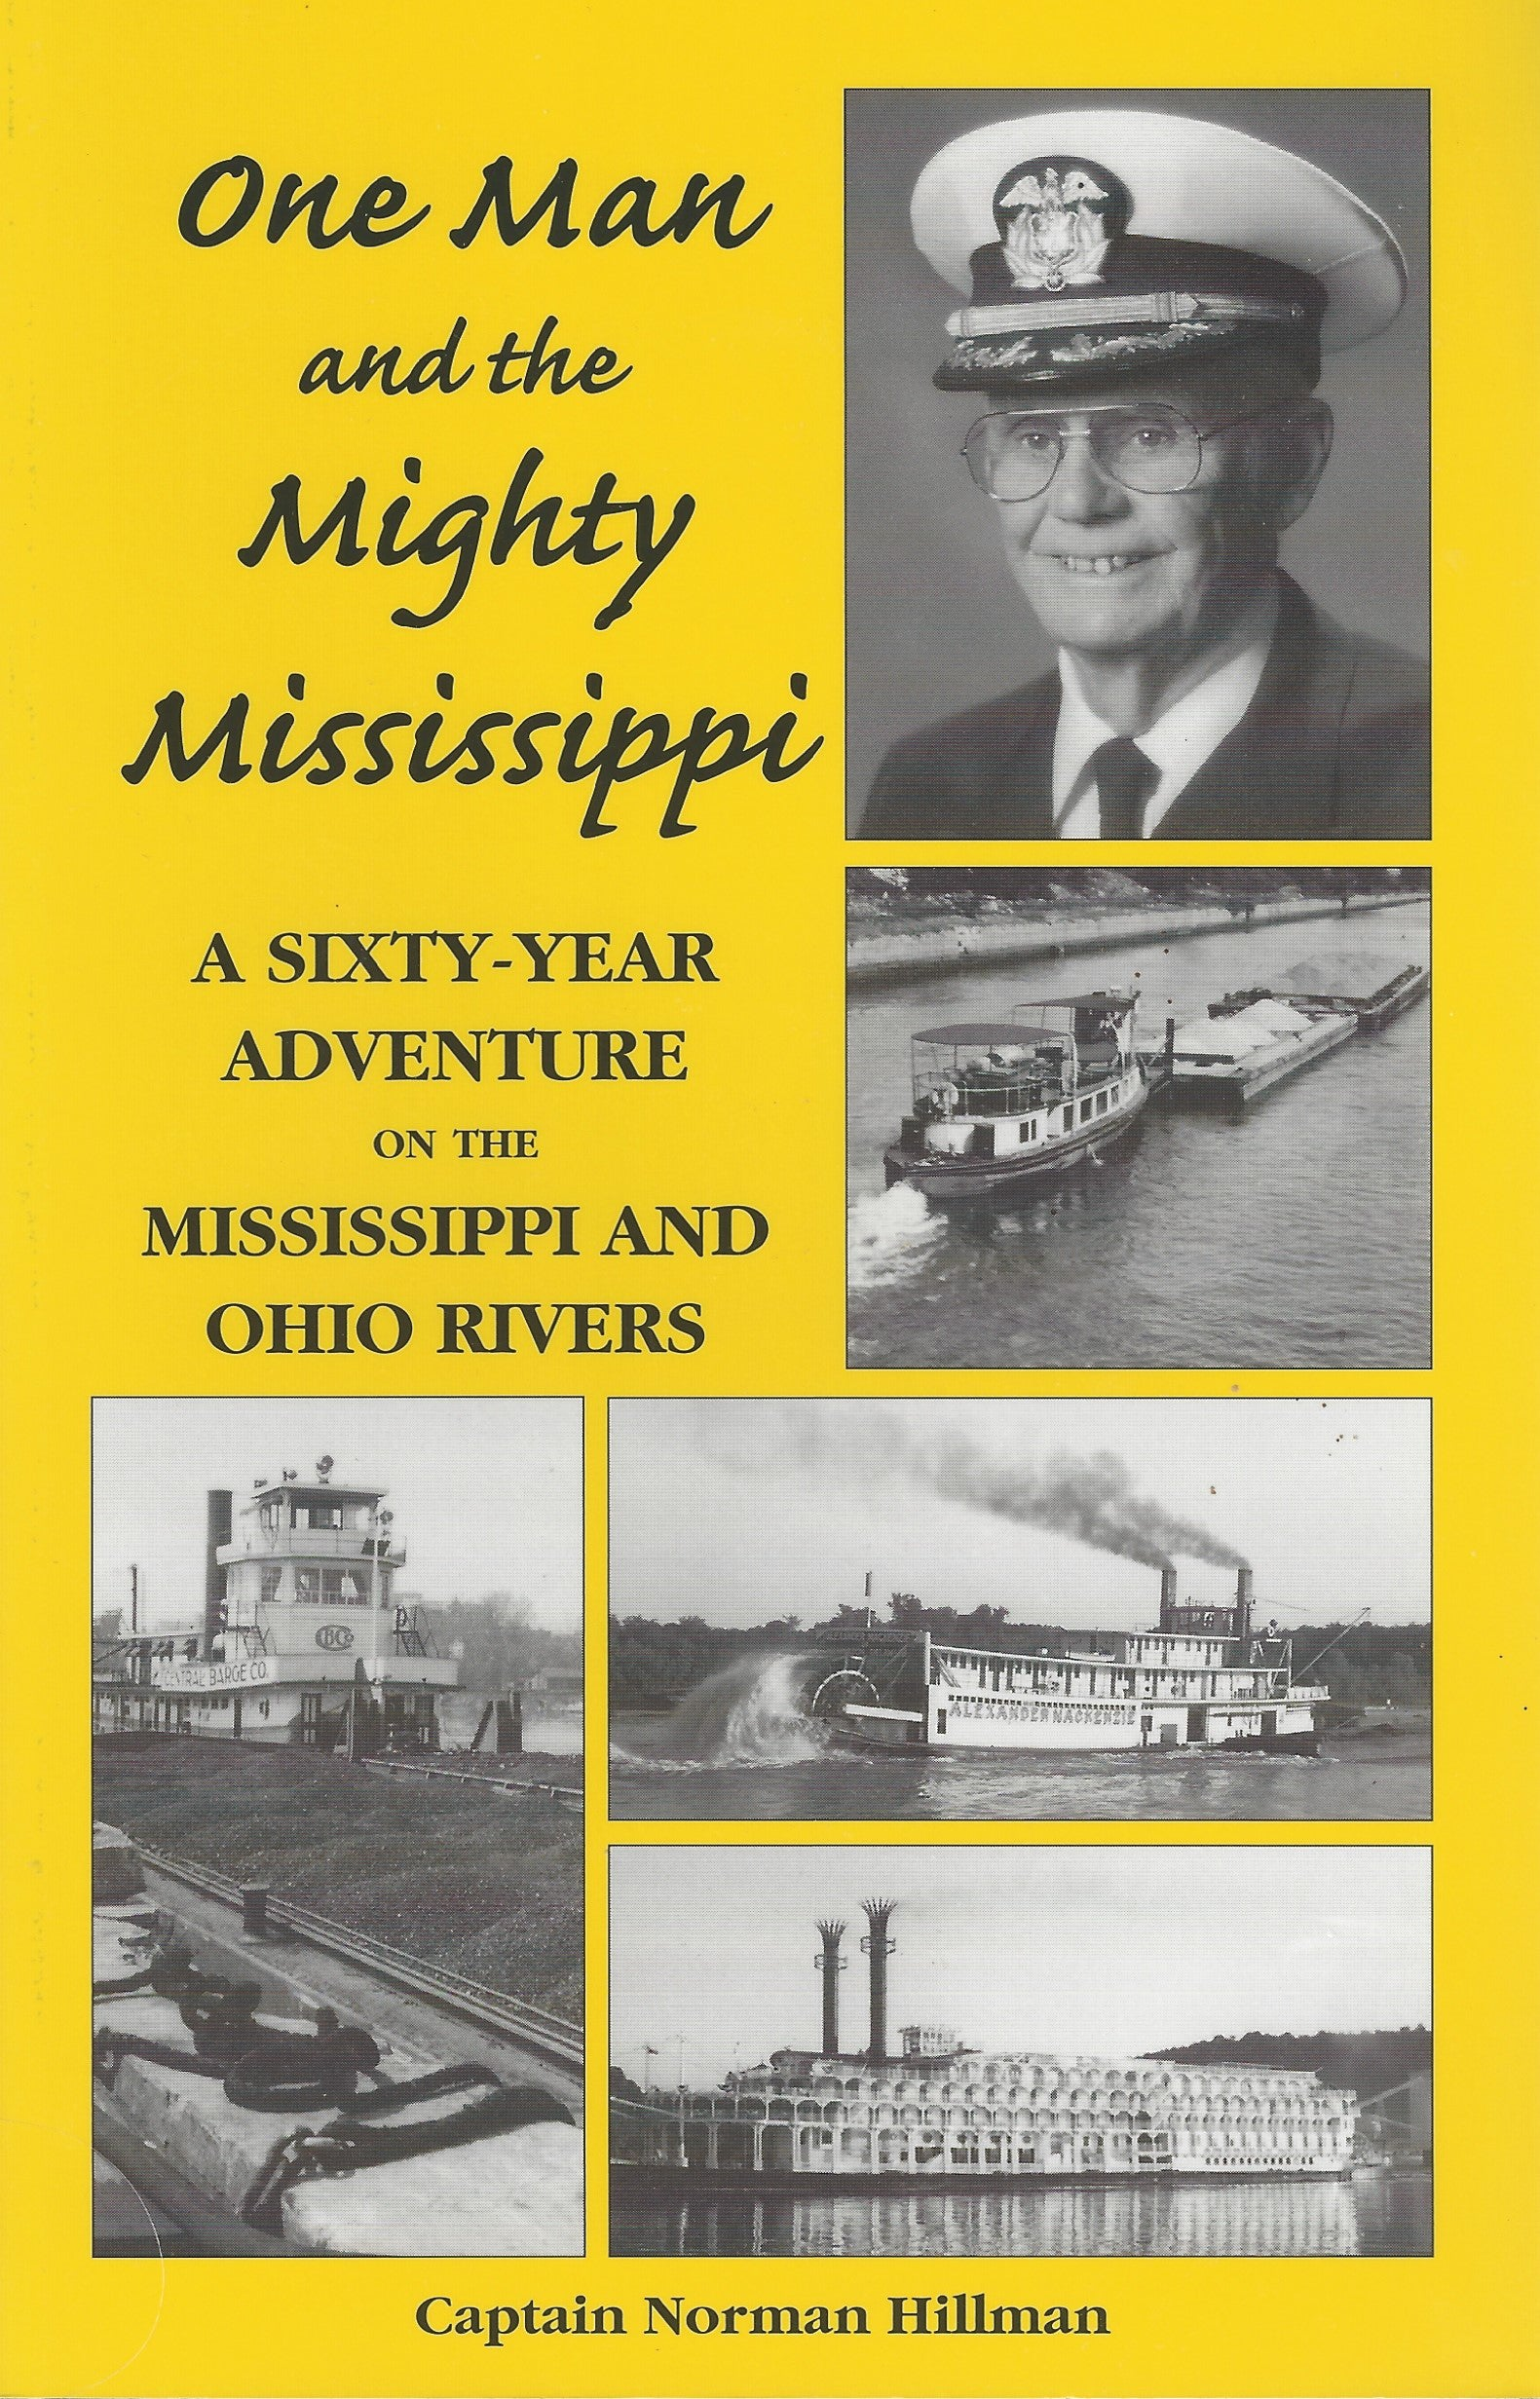 One Man and the Mighty Mississippi by Norman Hillman